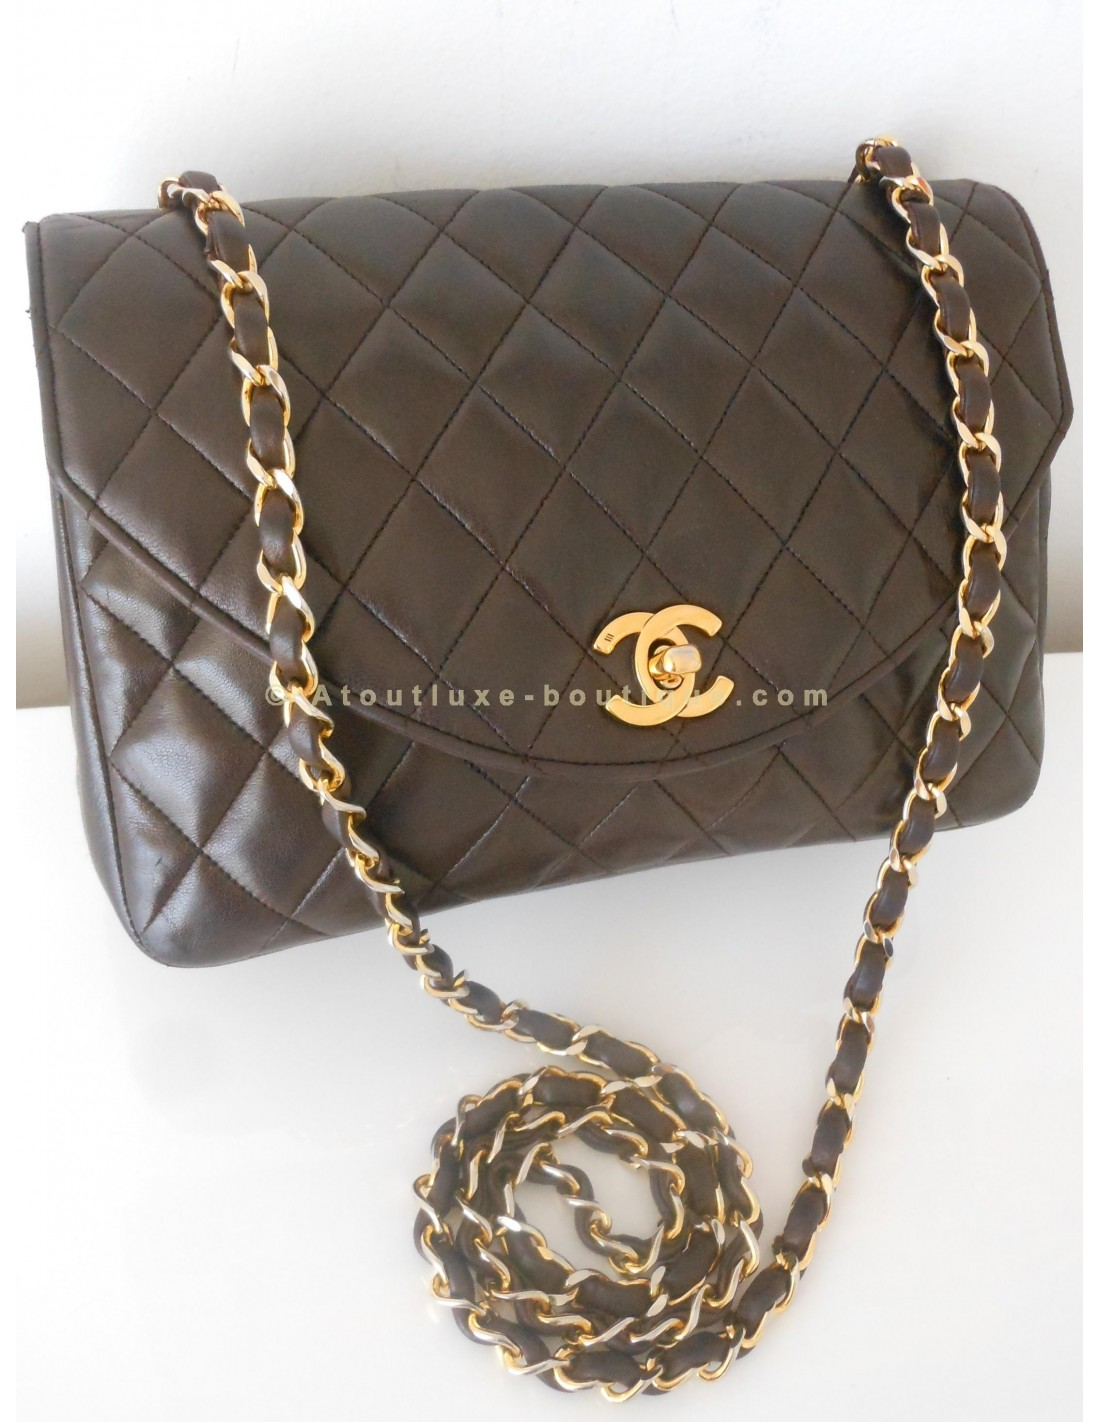 4ea045e9202 SAC CHANEL TIMELESS MARRON VINTAGE - Atoutluxe Boutique